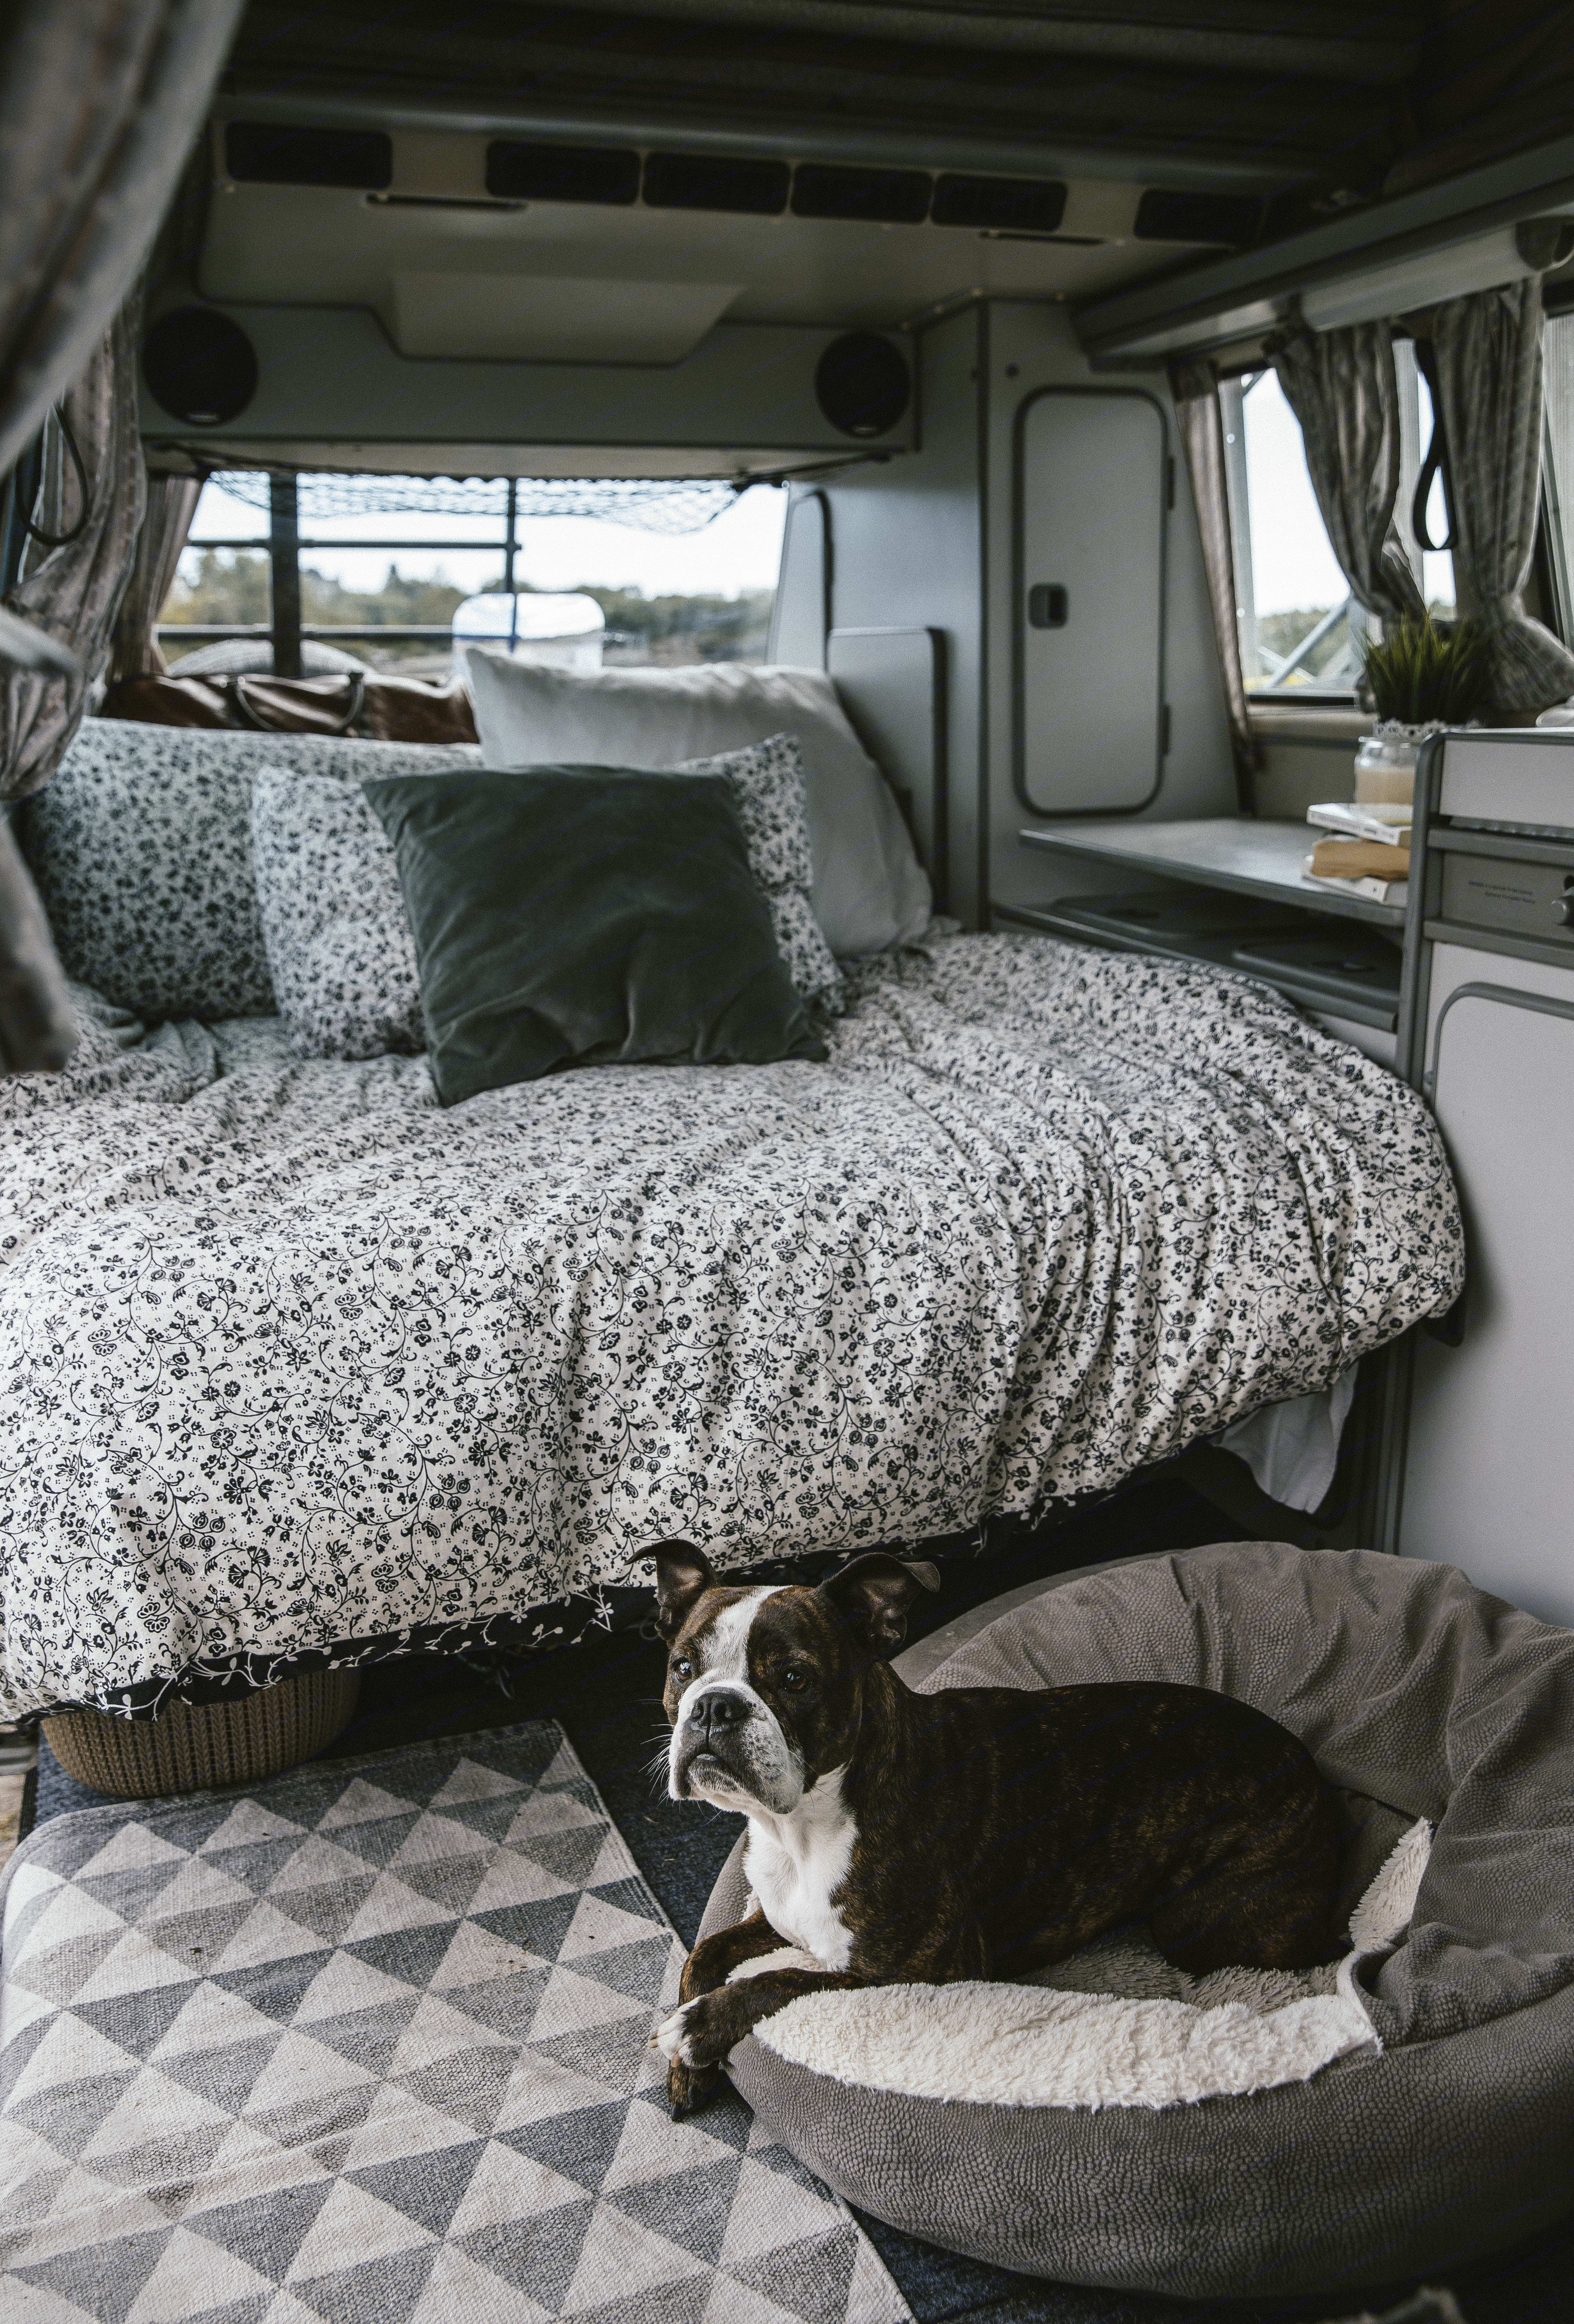 Your dog, are for sure, welcome for a little fee of 40$. I need to clean very deeply to remove all the trace of your badass copilot dog...in case someone are allergic after you. Like this everyone can enjoy there roadtrip ;). Volkswagen T3 Westfalia 1984